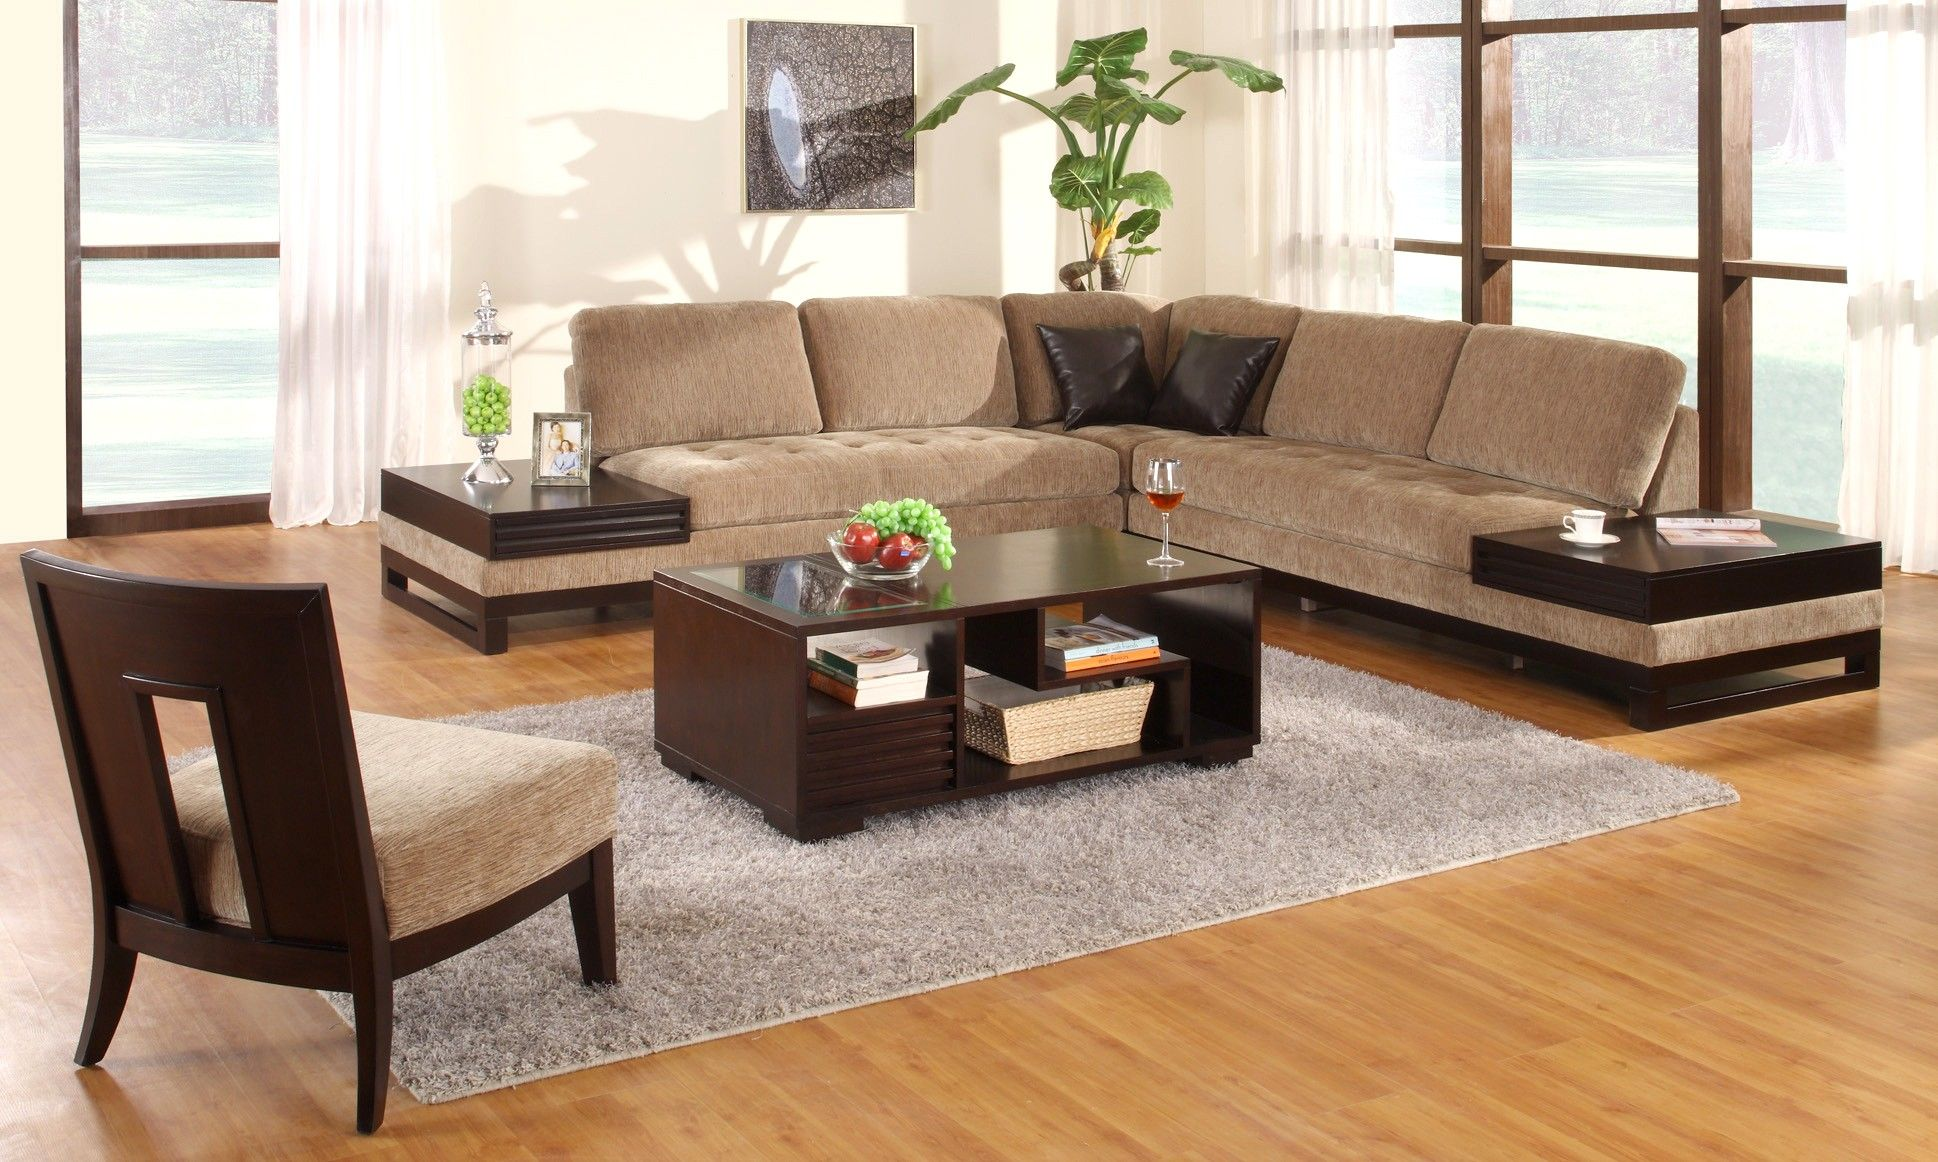 Sectional Livg Room Sets As Wide Furniture Sumpto Table And Wooden Furniture Living Room